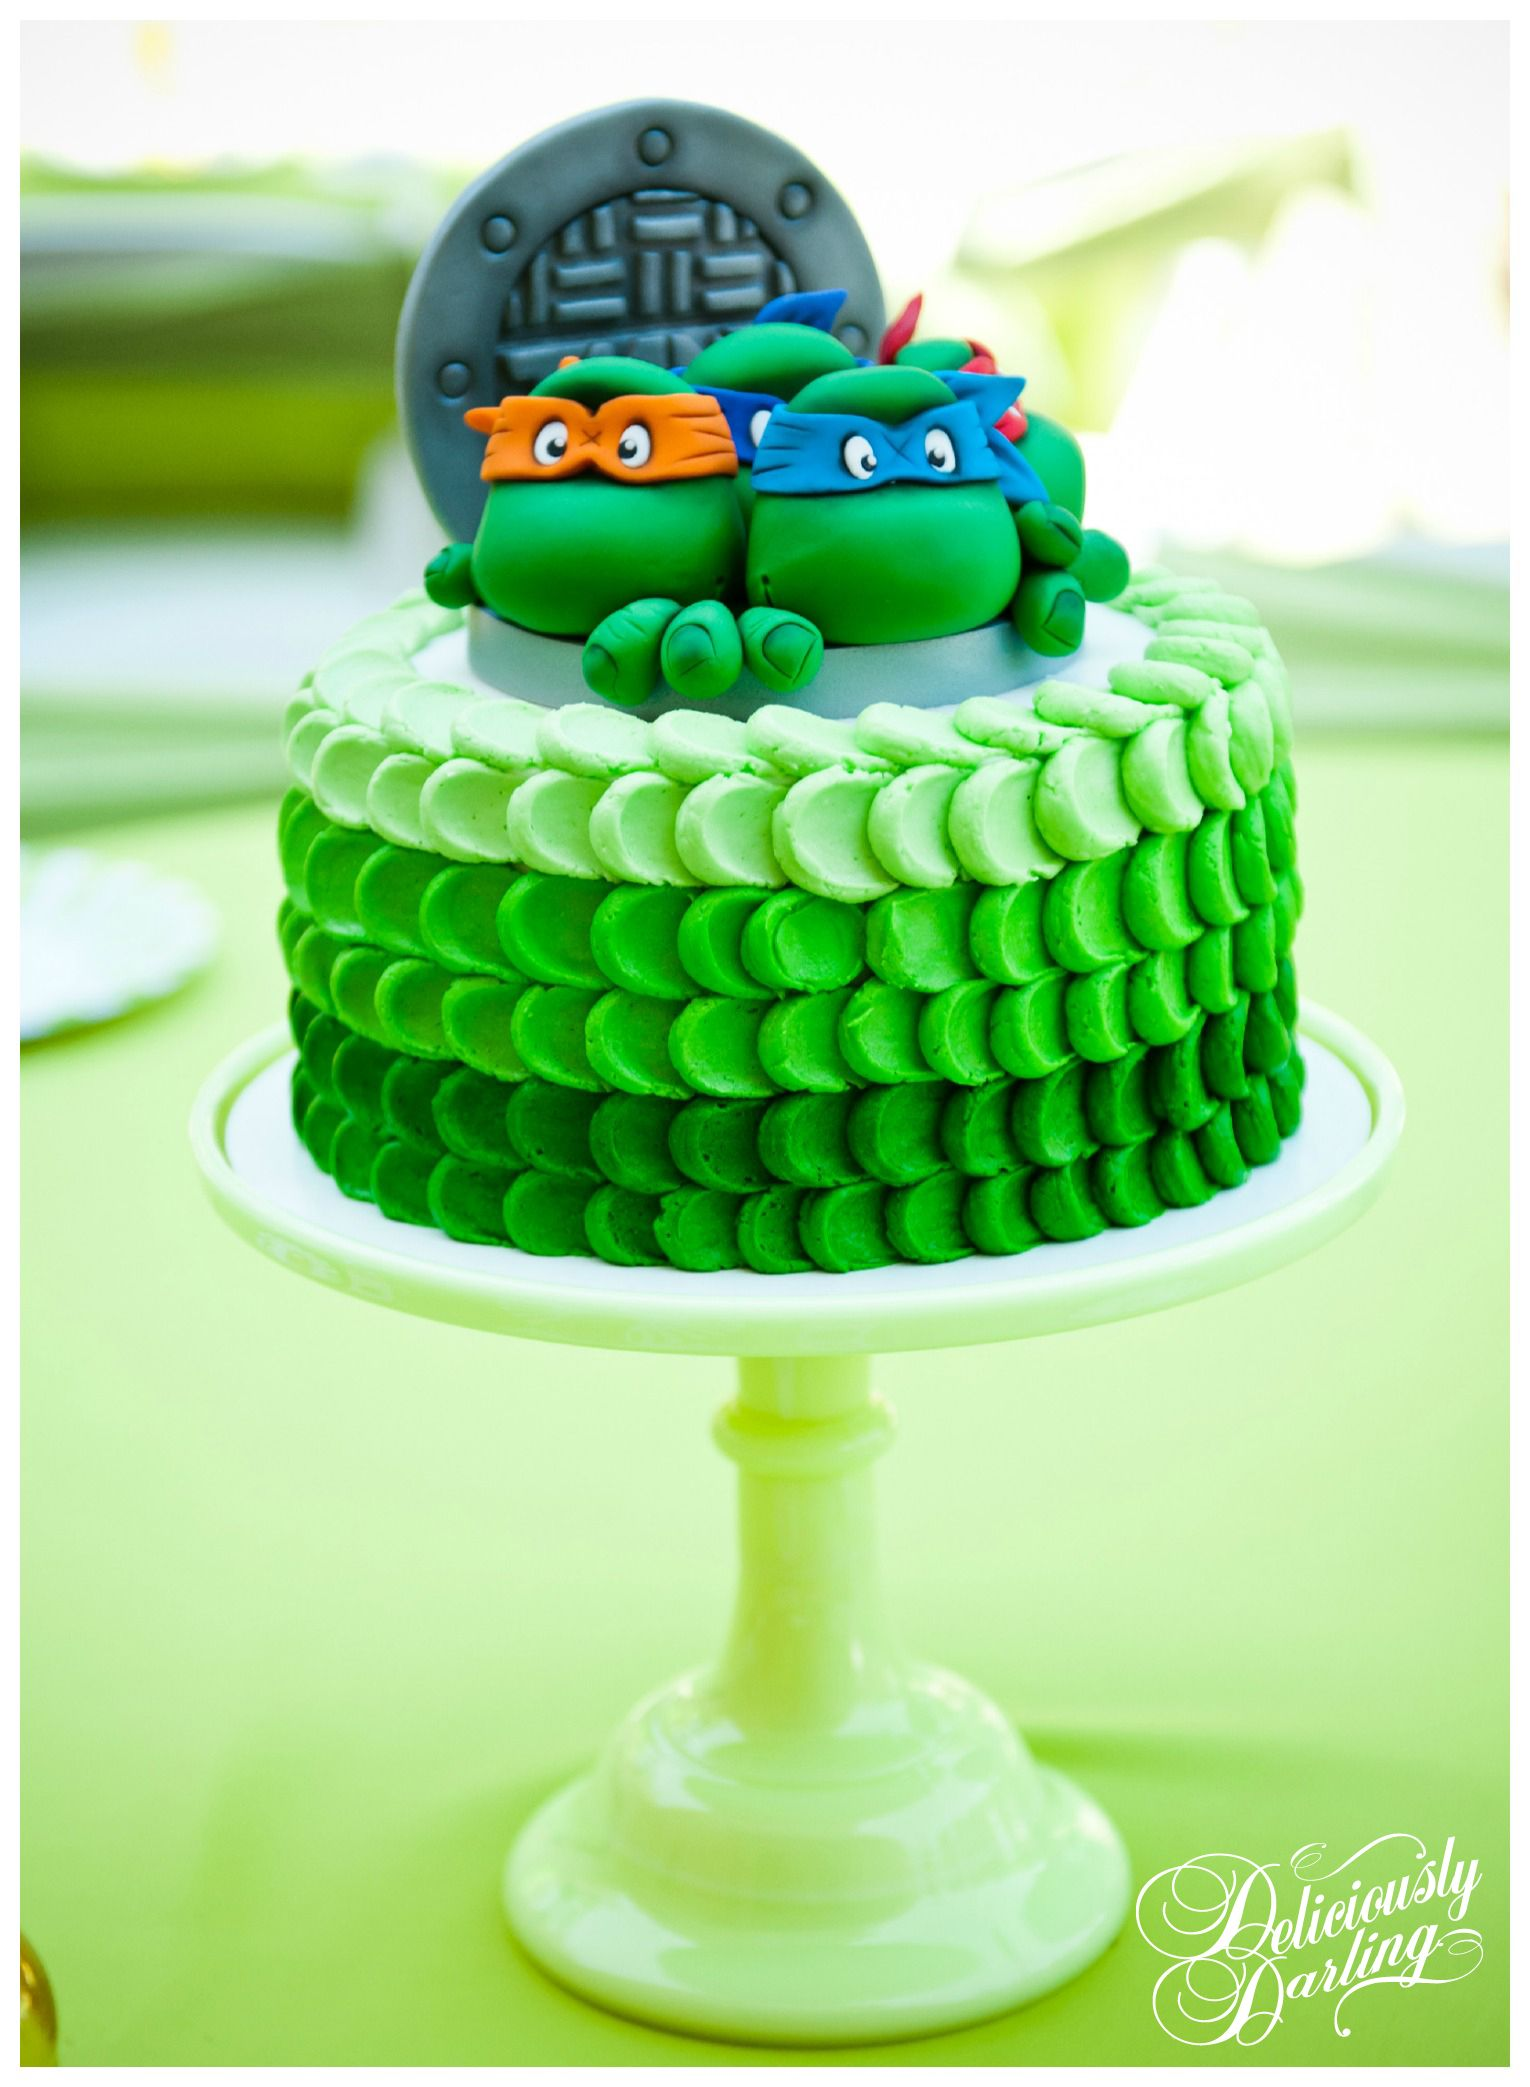 Deliciously Darling Teenage Mutant Ninja Turtle Birthday Party